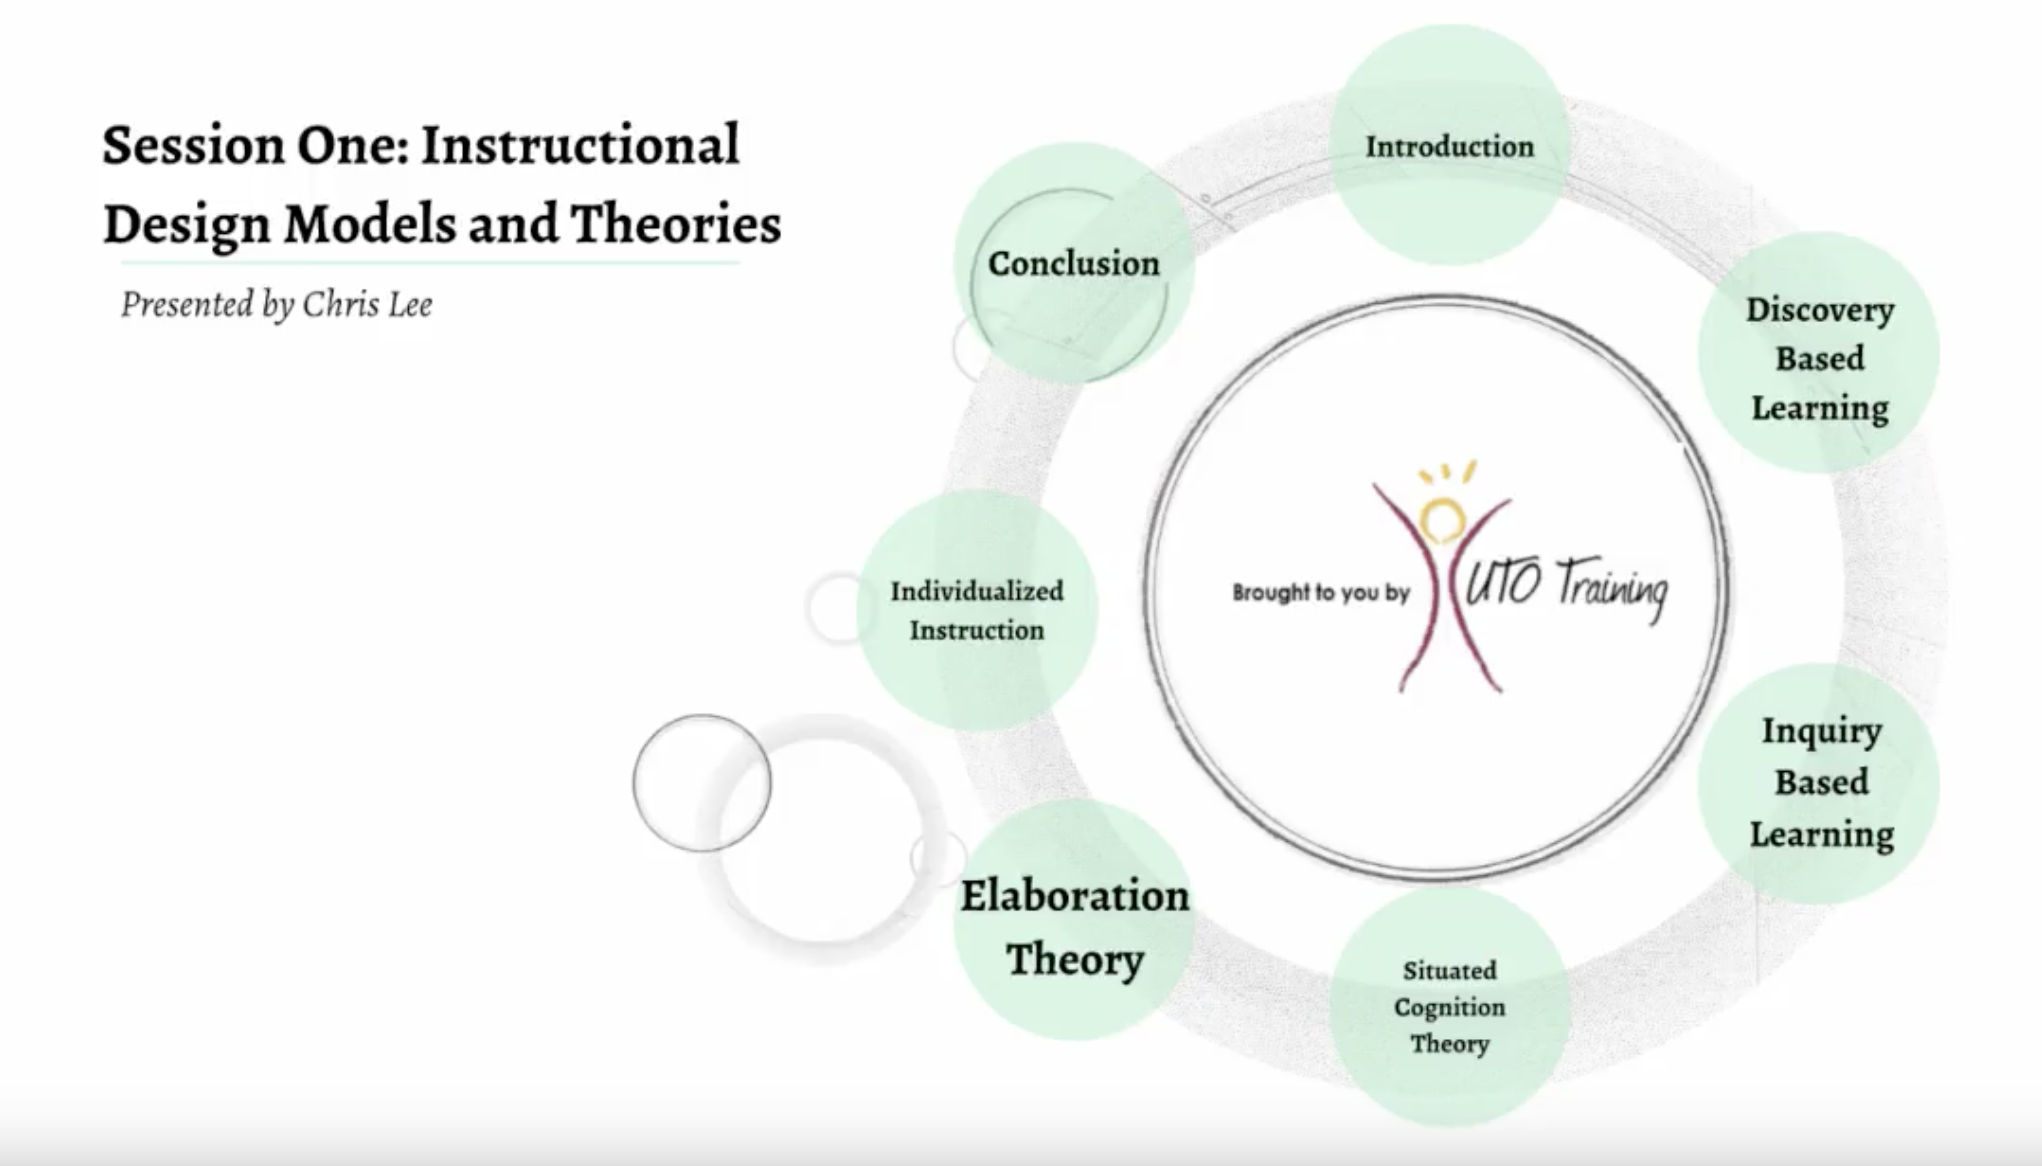 Instructional Design Models and Theories: Introduction